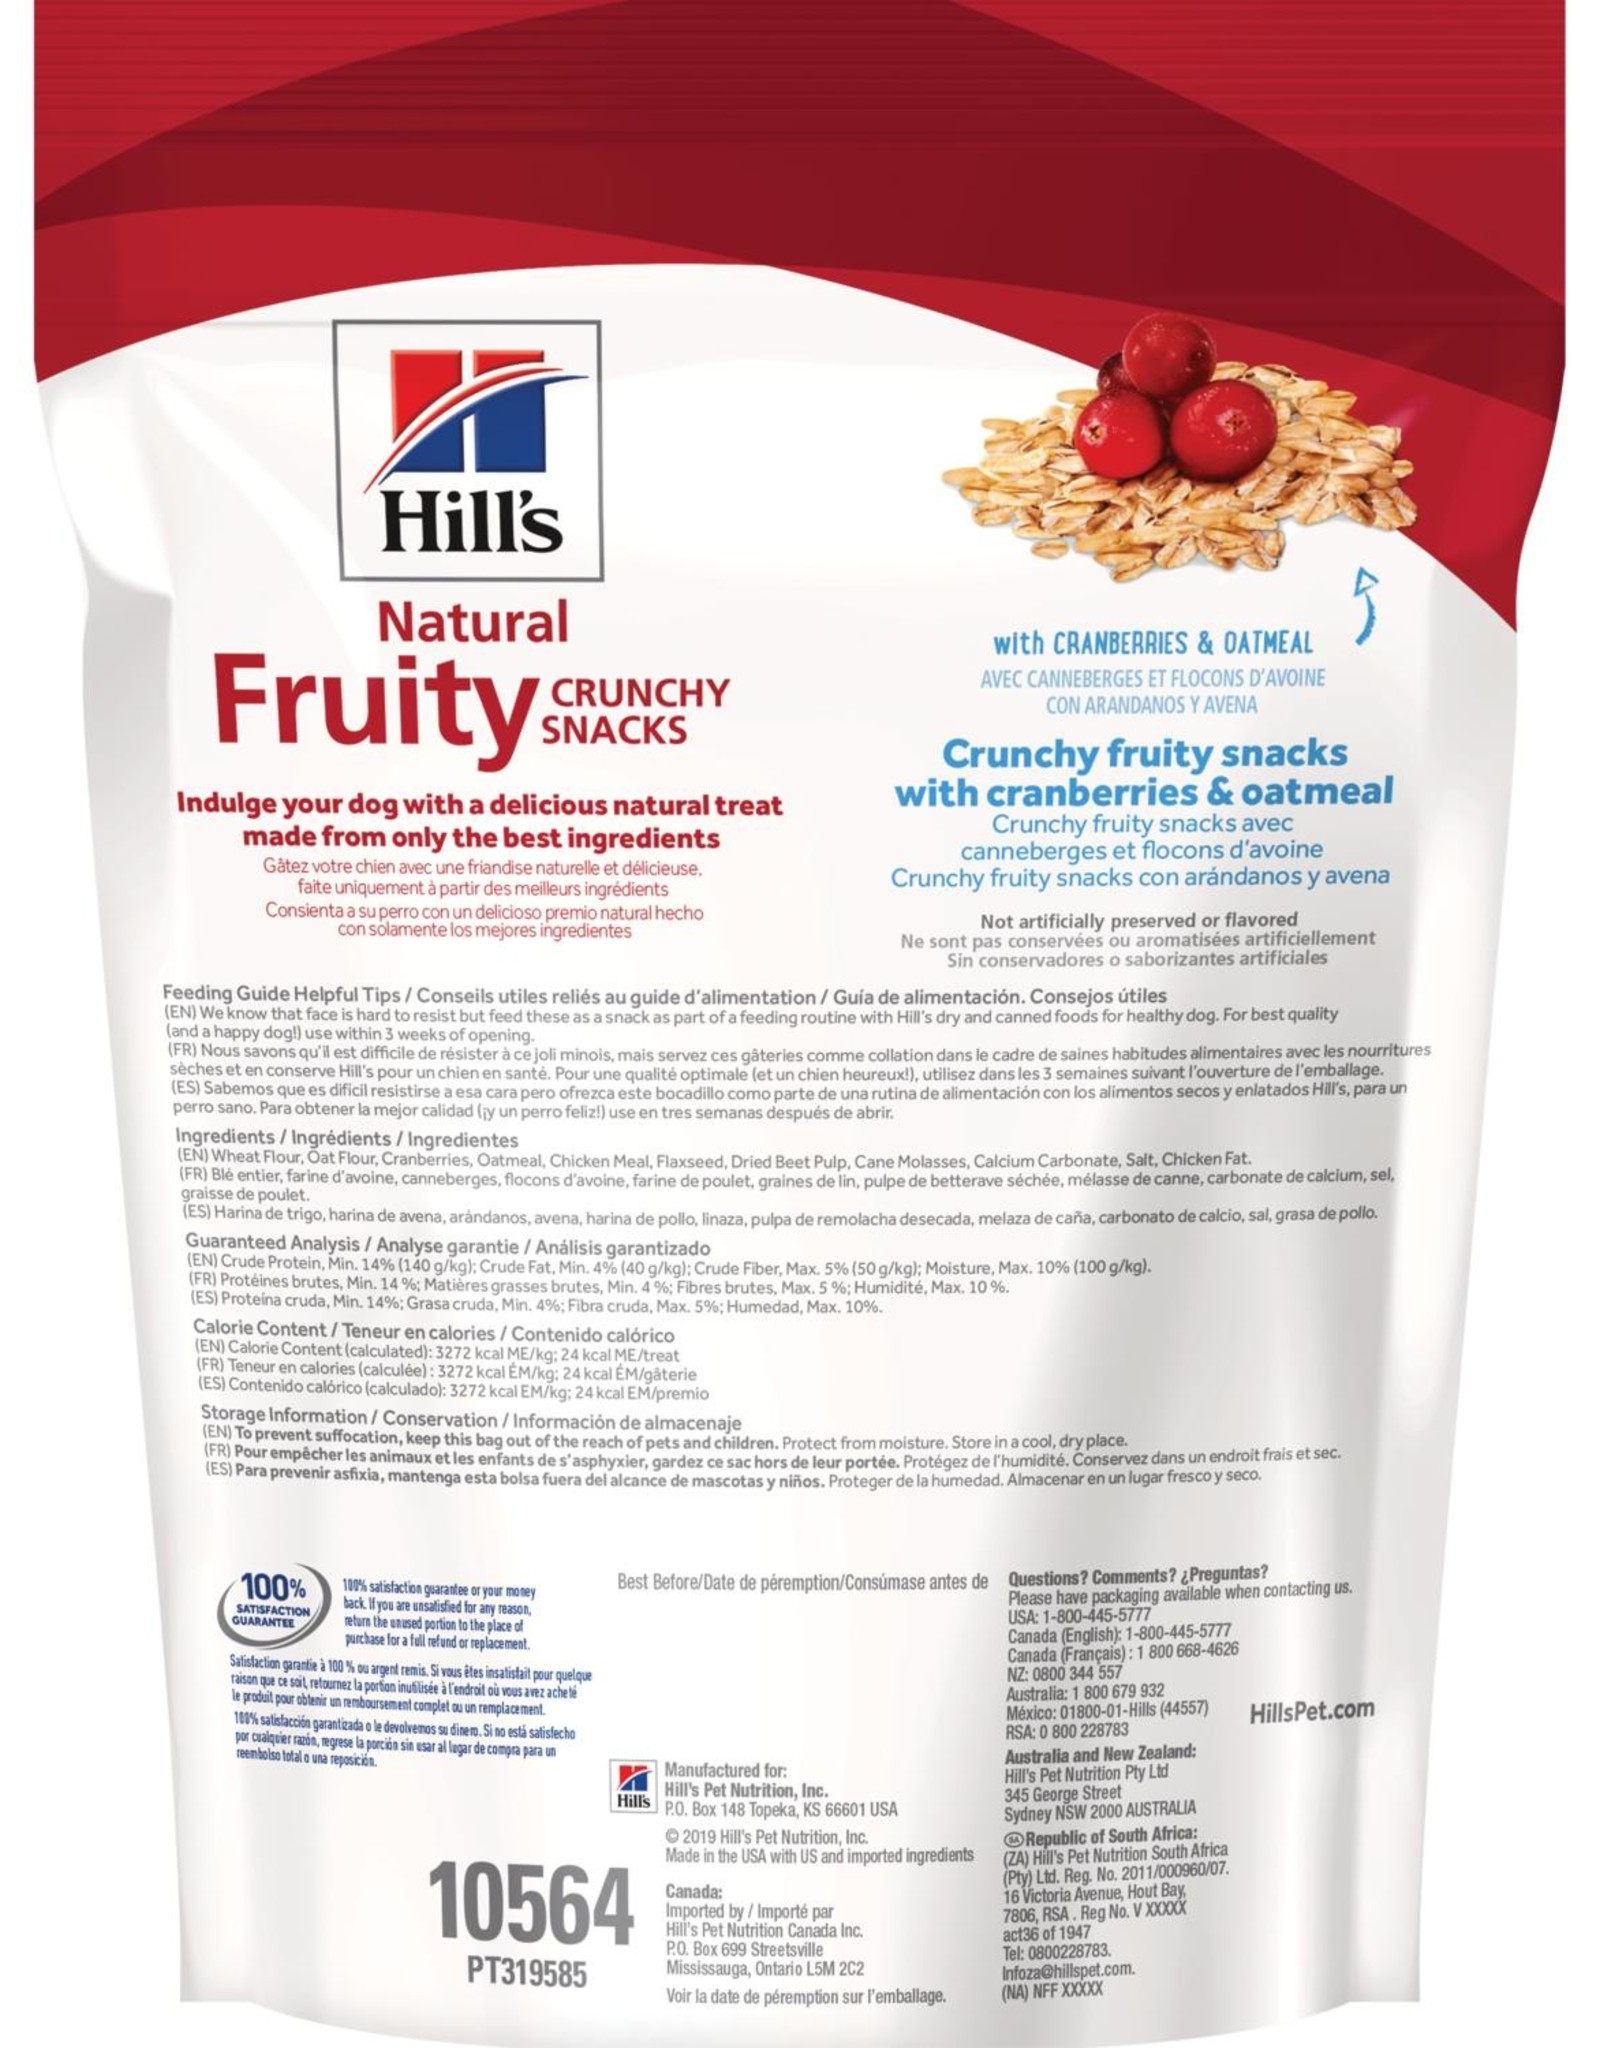 SCIENCE DIET HILL'S FRUITY CRUNCHY SNACKS CRANBERRIES & OATMEAL 8OZ